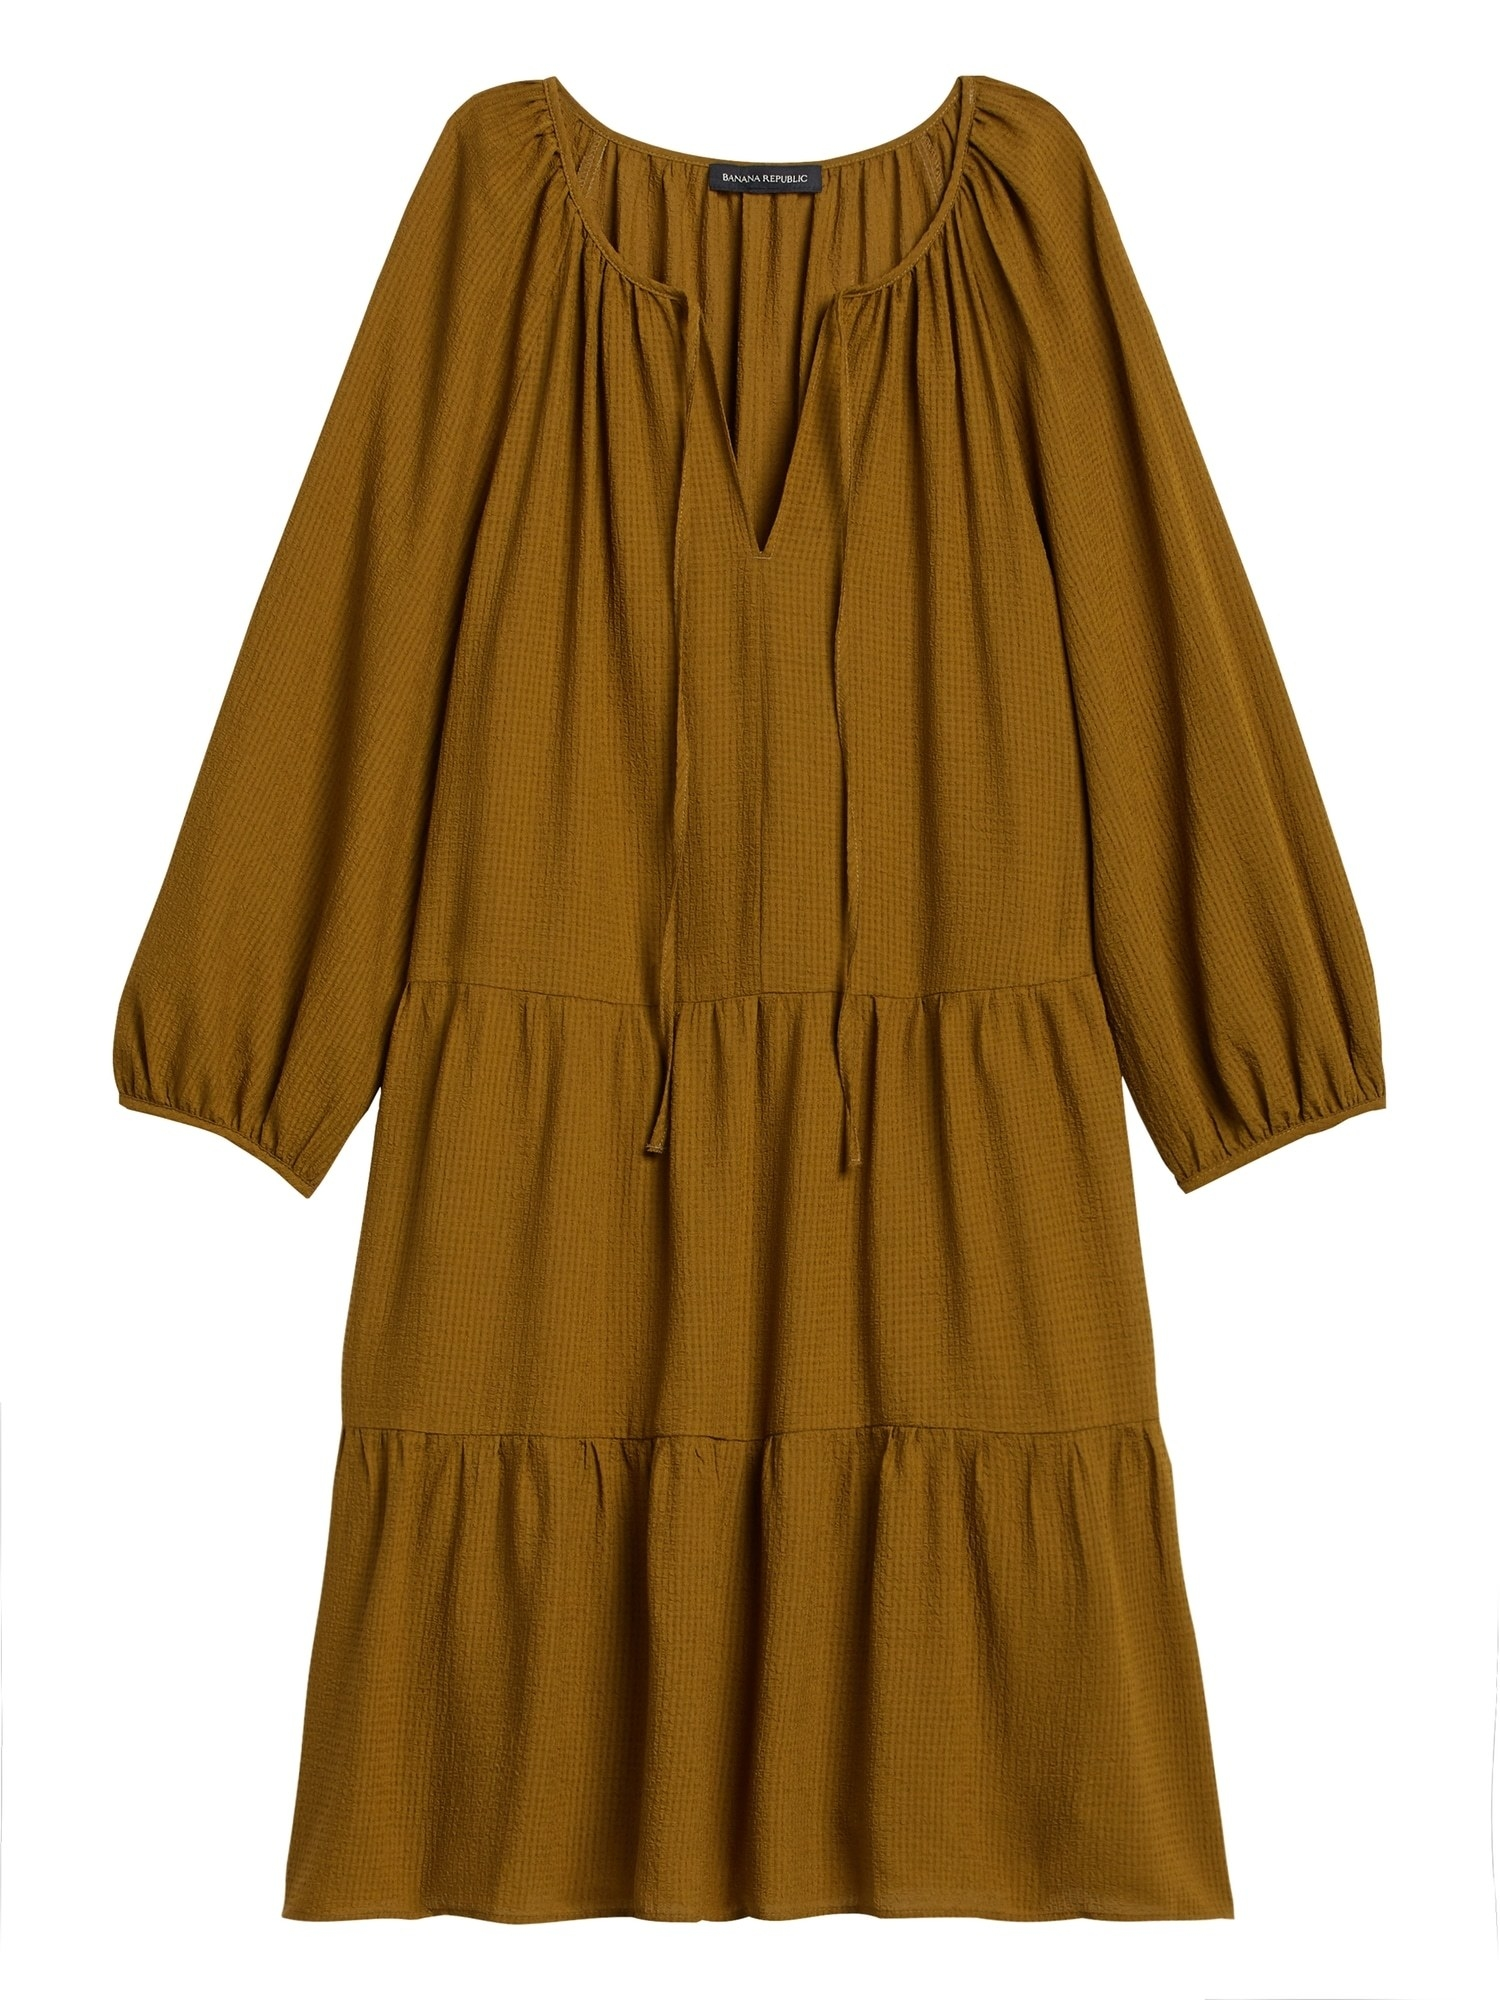 The 3/4-sleeved dress with three tiers, balloon sleeves, v-neck, and ties in green